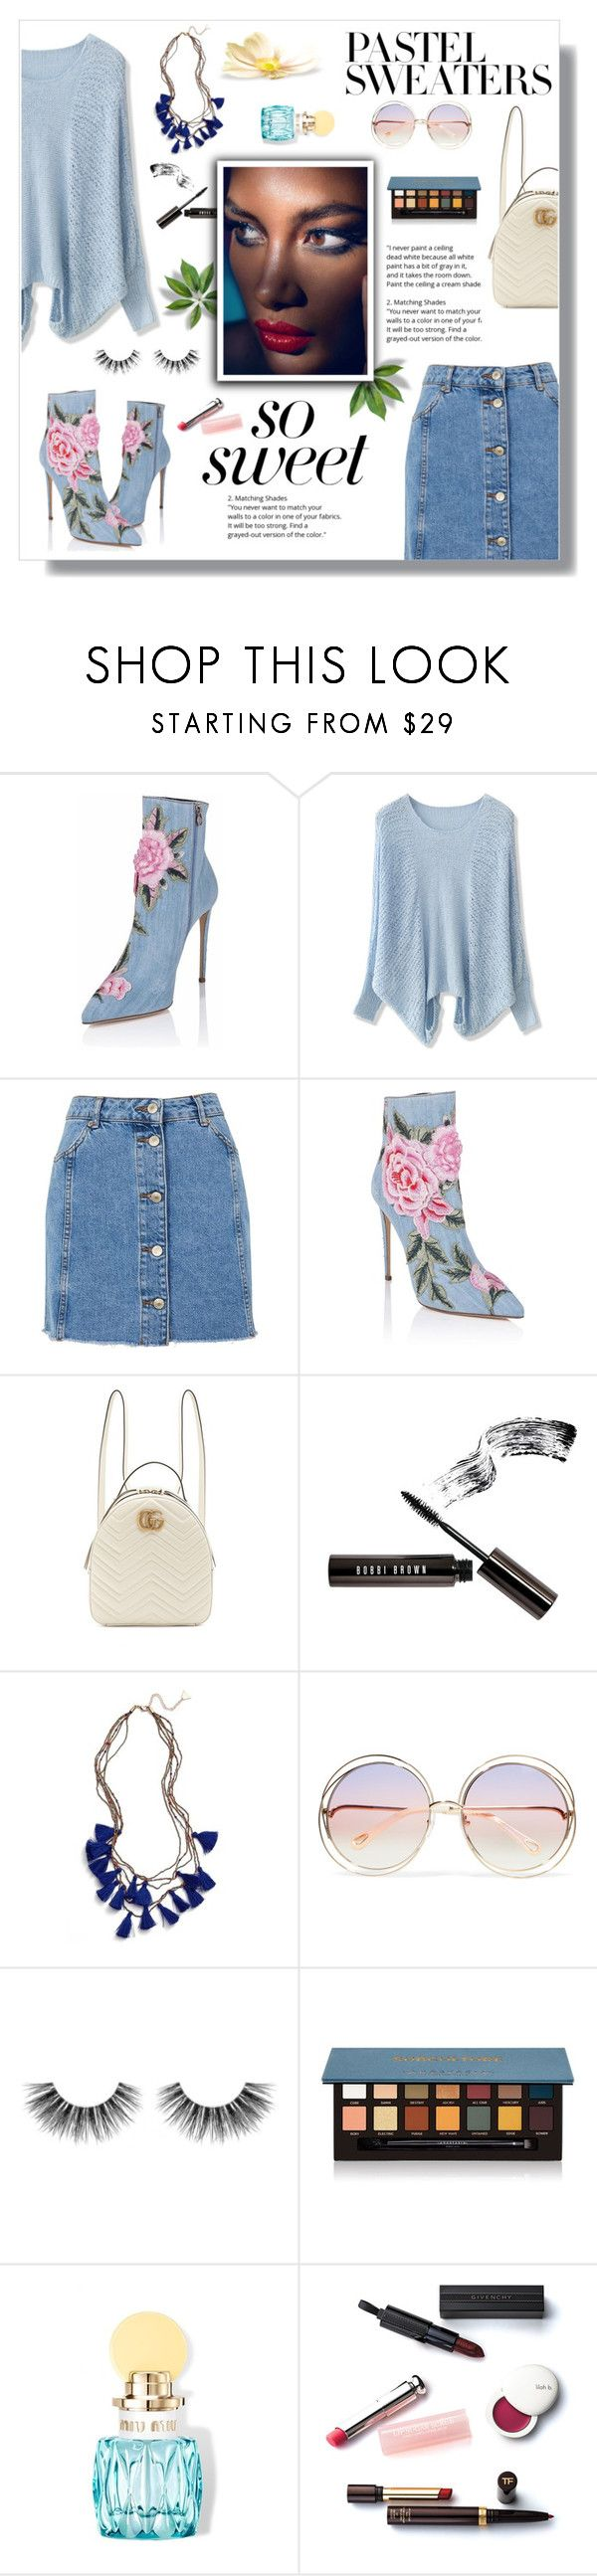 """So Sweet: Pastel Sweaters"" by nadia-gadelmawla ❤ liked on Polyvore featuring Chicwish, Topshop, Gucci, Bobbi Brown Cosmetics, Serefina, Chloé, Velour Lashes, Anastasia Beverly Hills, Miu Miu and Christian Dior"